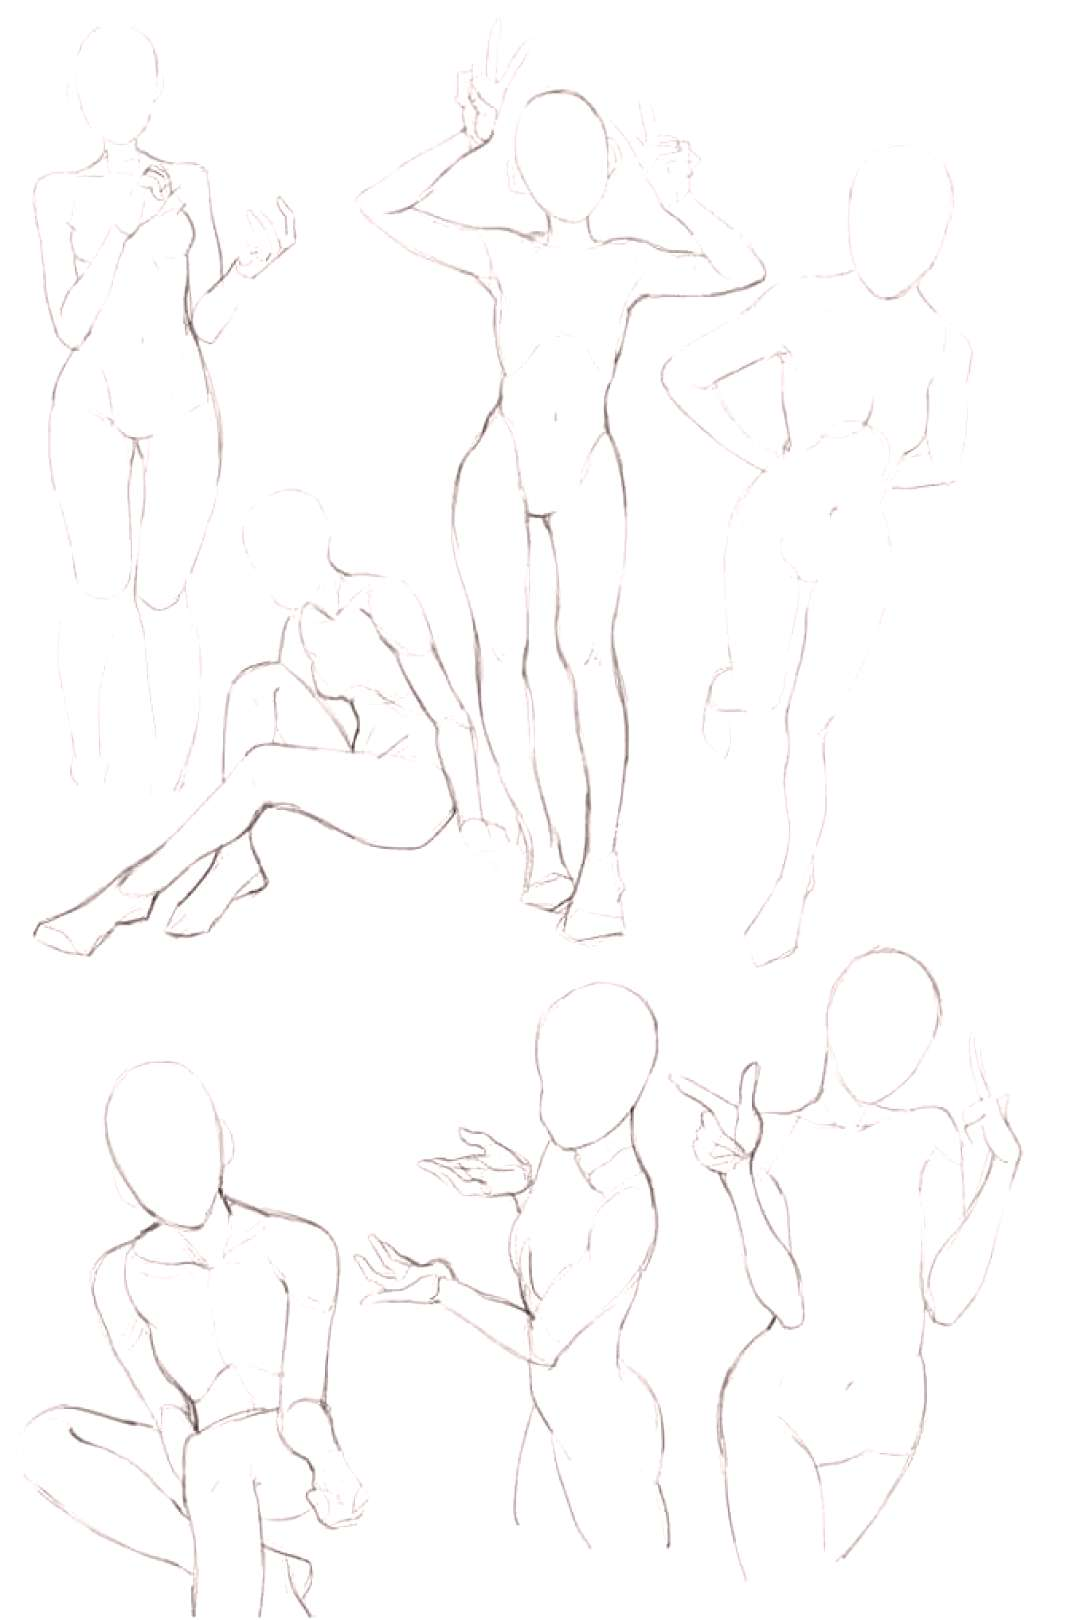 Drawing The Other Eye The Human Figure - Tips For Beginners Image result for female pose reference